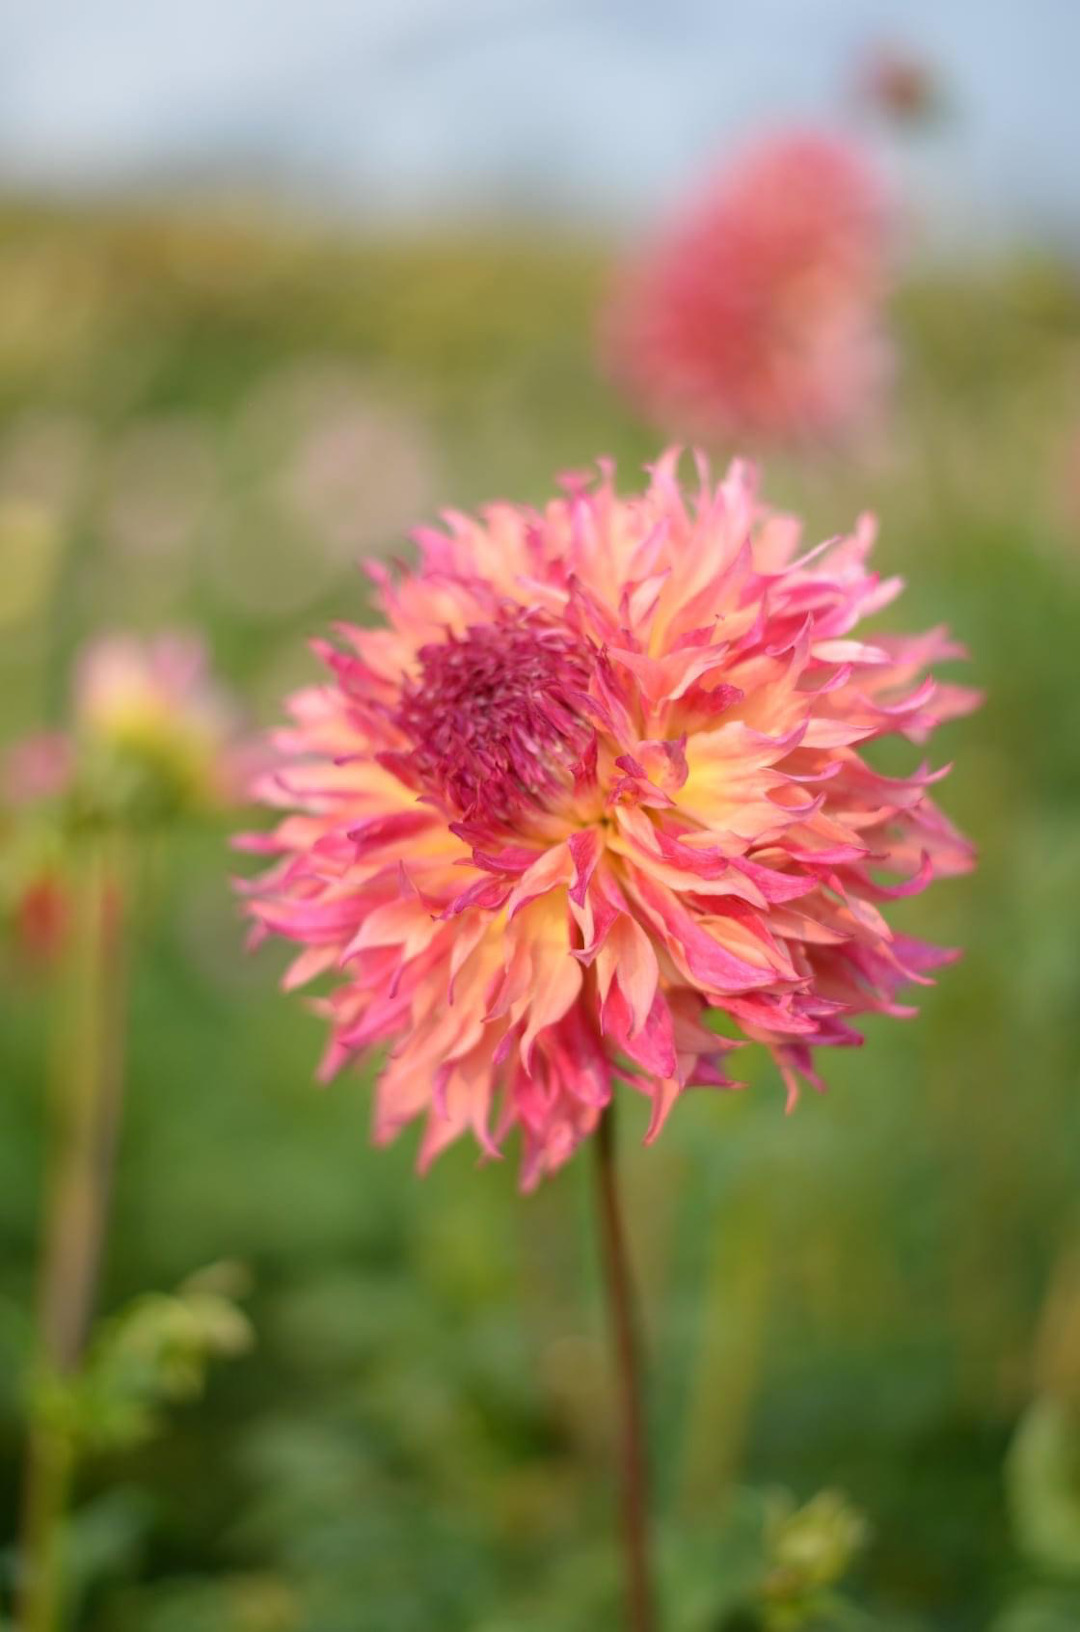 Light pink and yellow dahlia